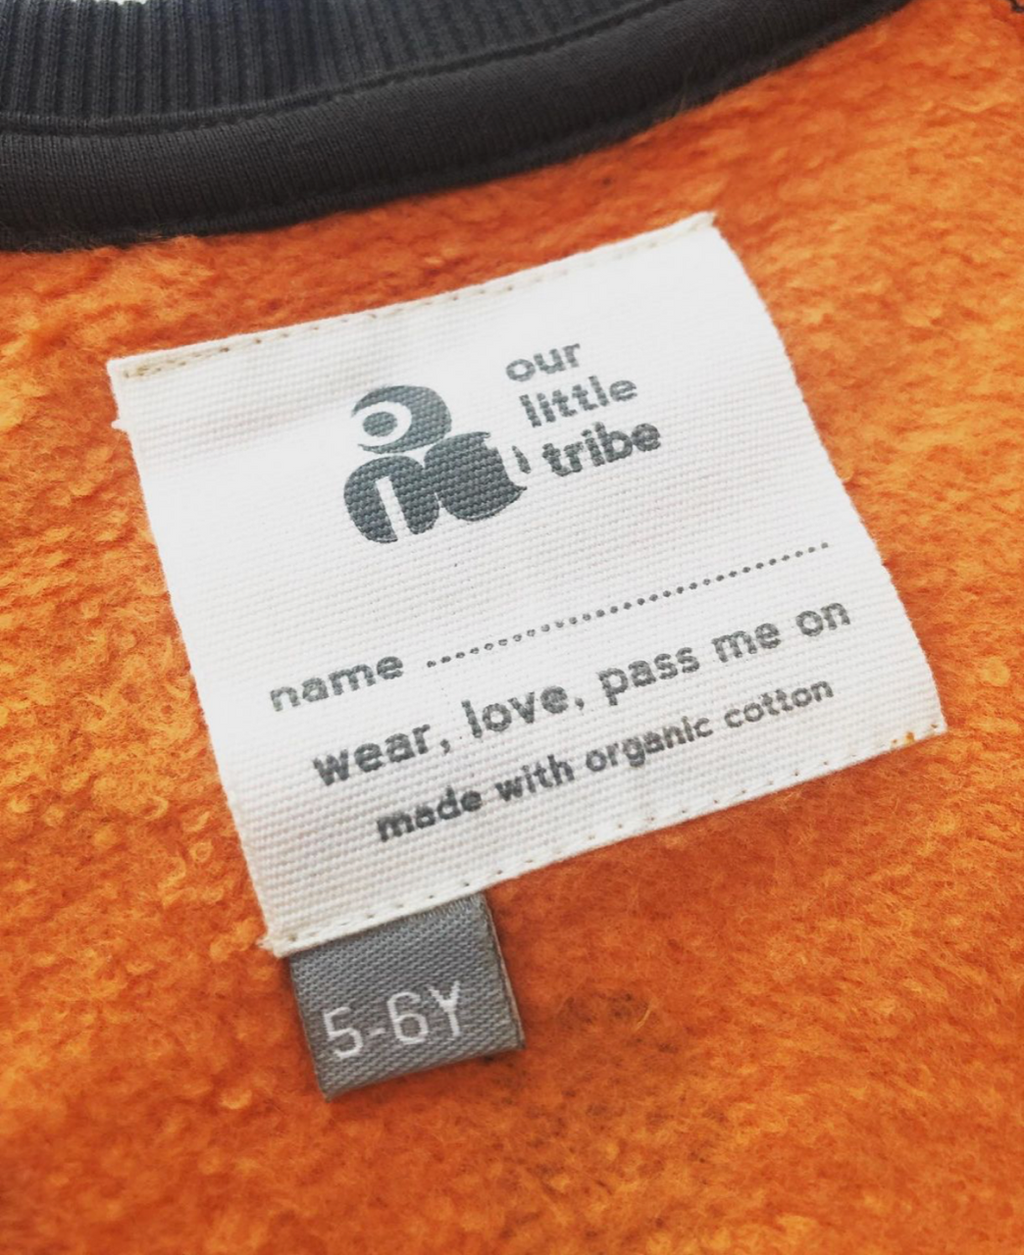 wear, love, pass me on....